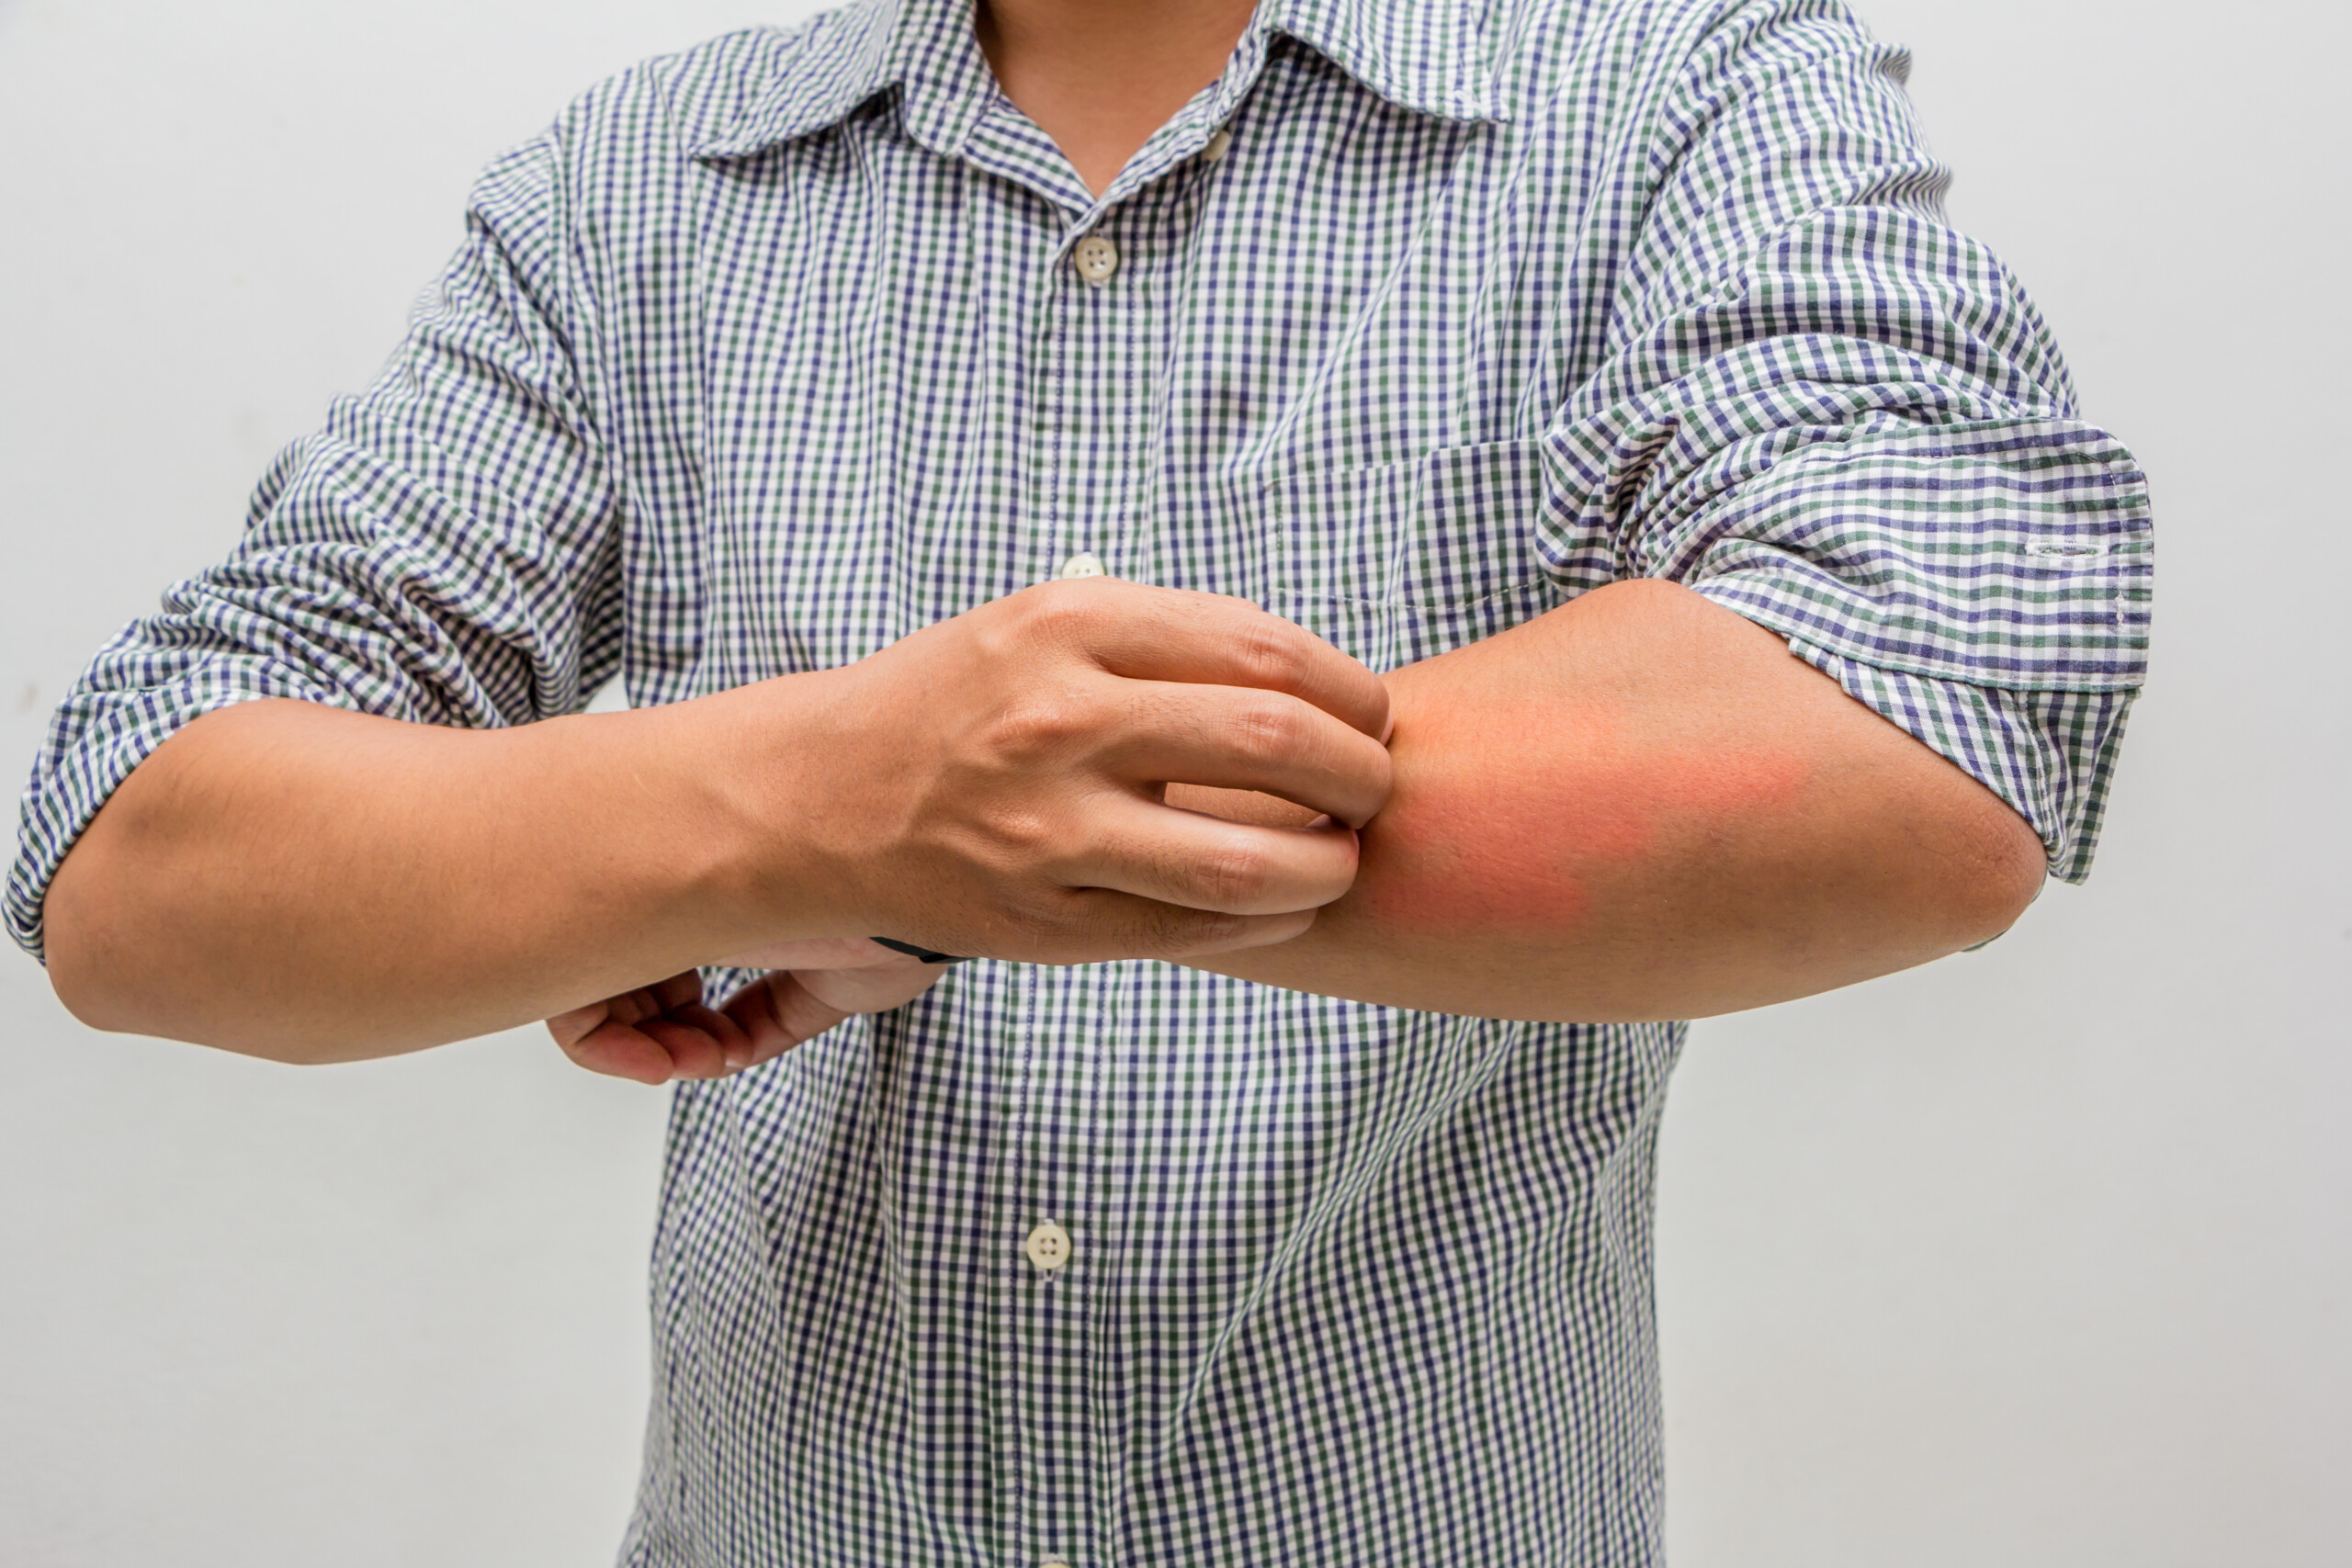 Itchy Arms and Legs in Winter: Causes & Solutions